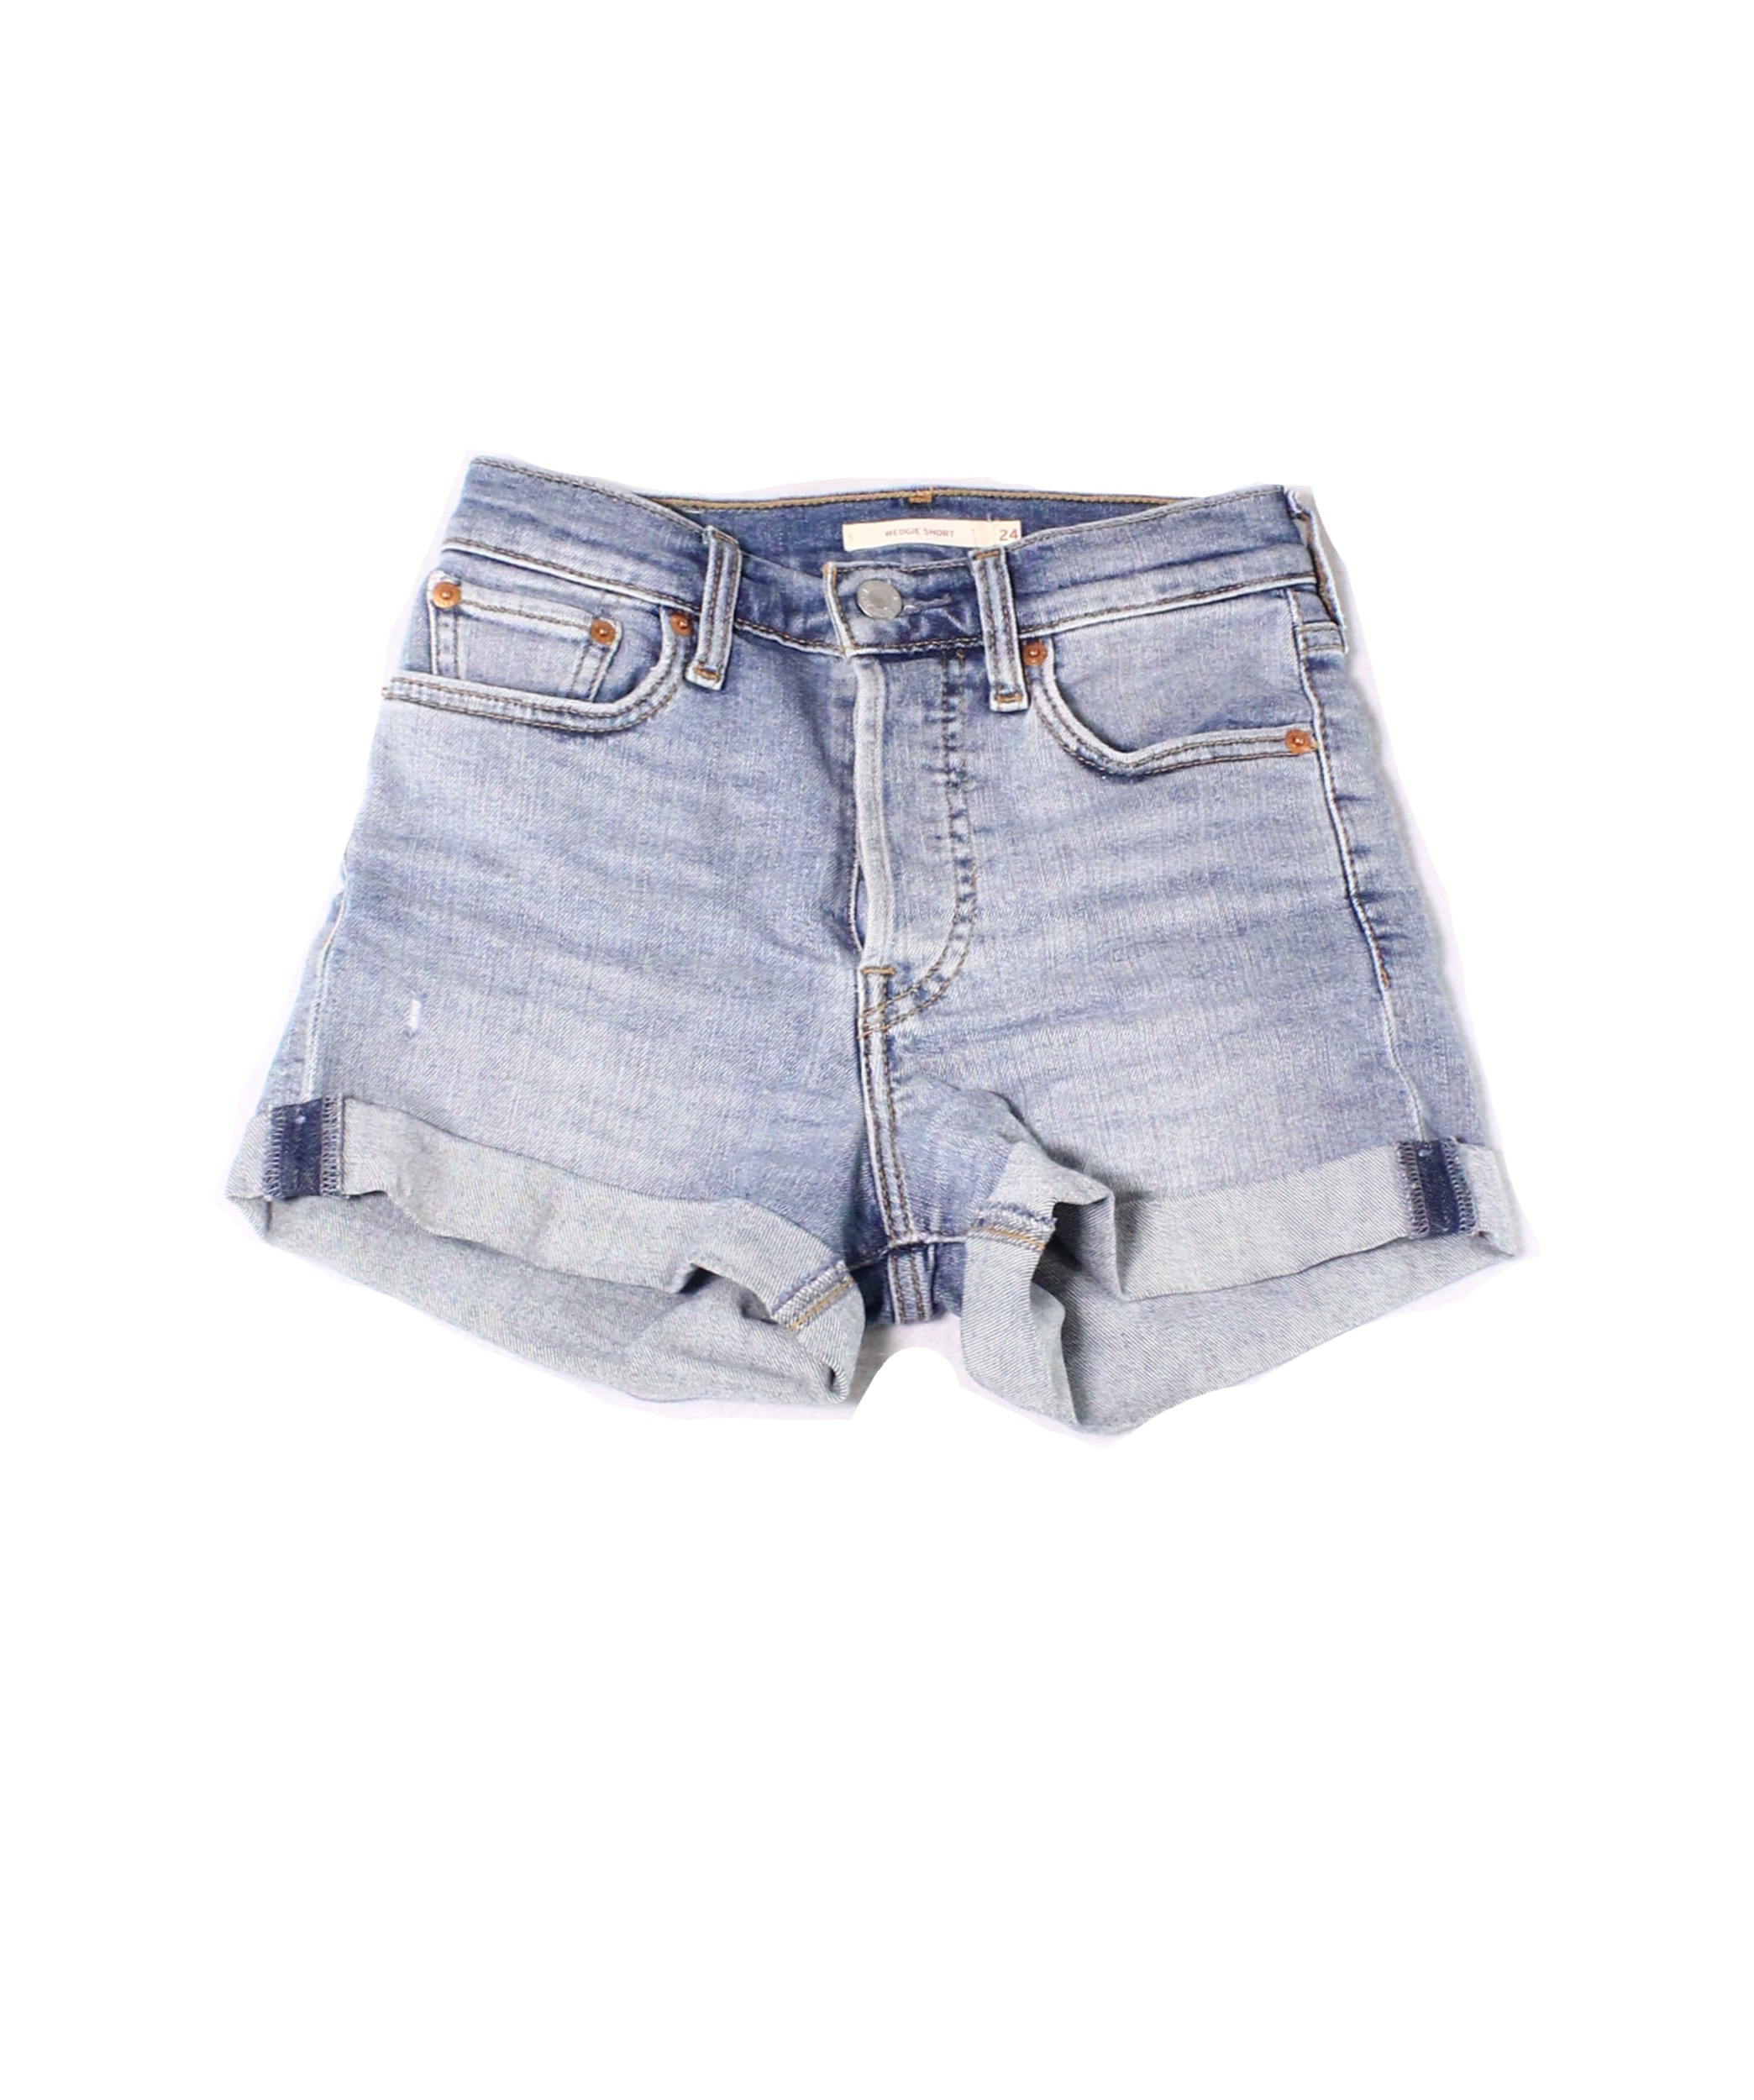 cfd1ac49 Details about Levi's NEW Light Blue Womens Size 24 Cuffed Button-Fly Denim  Shorts $30 119